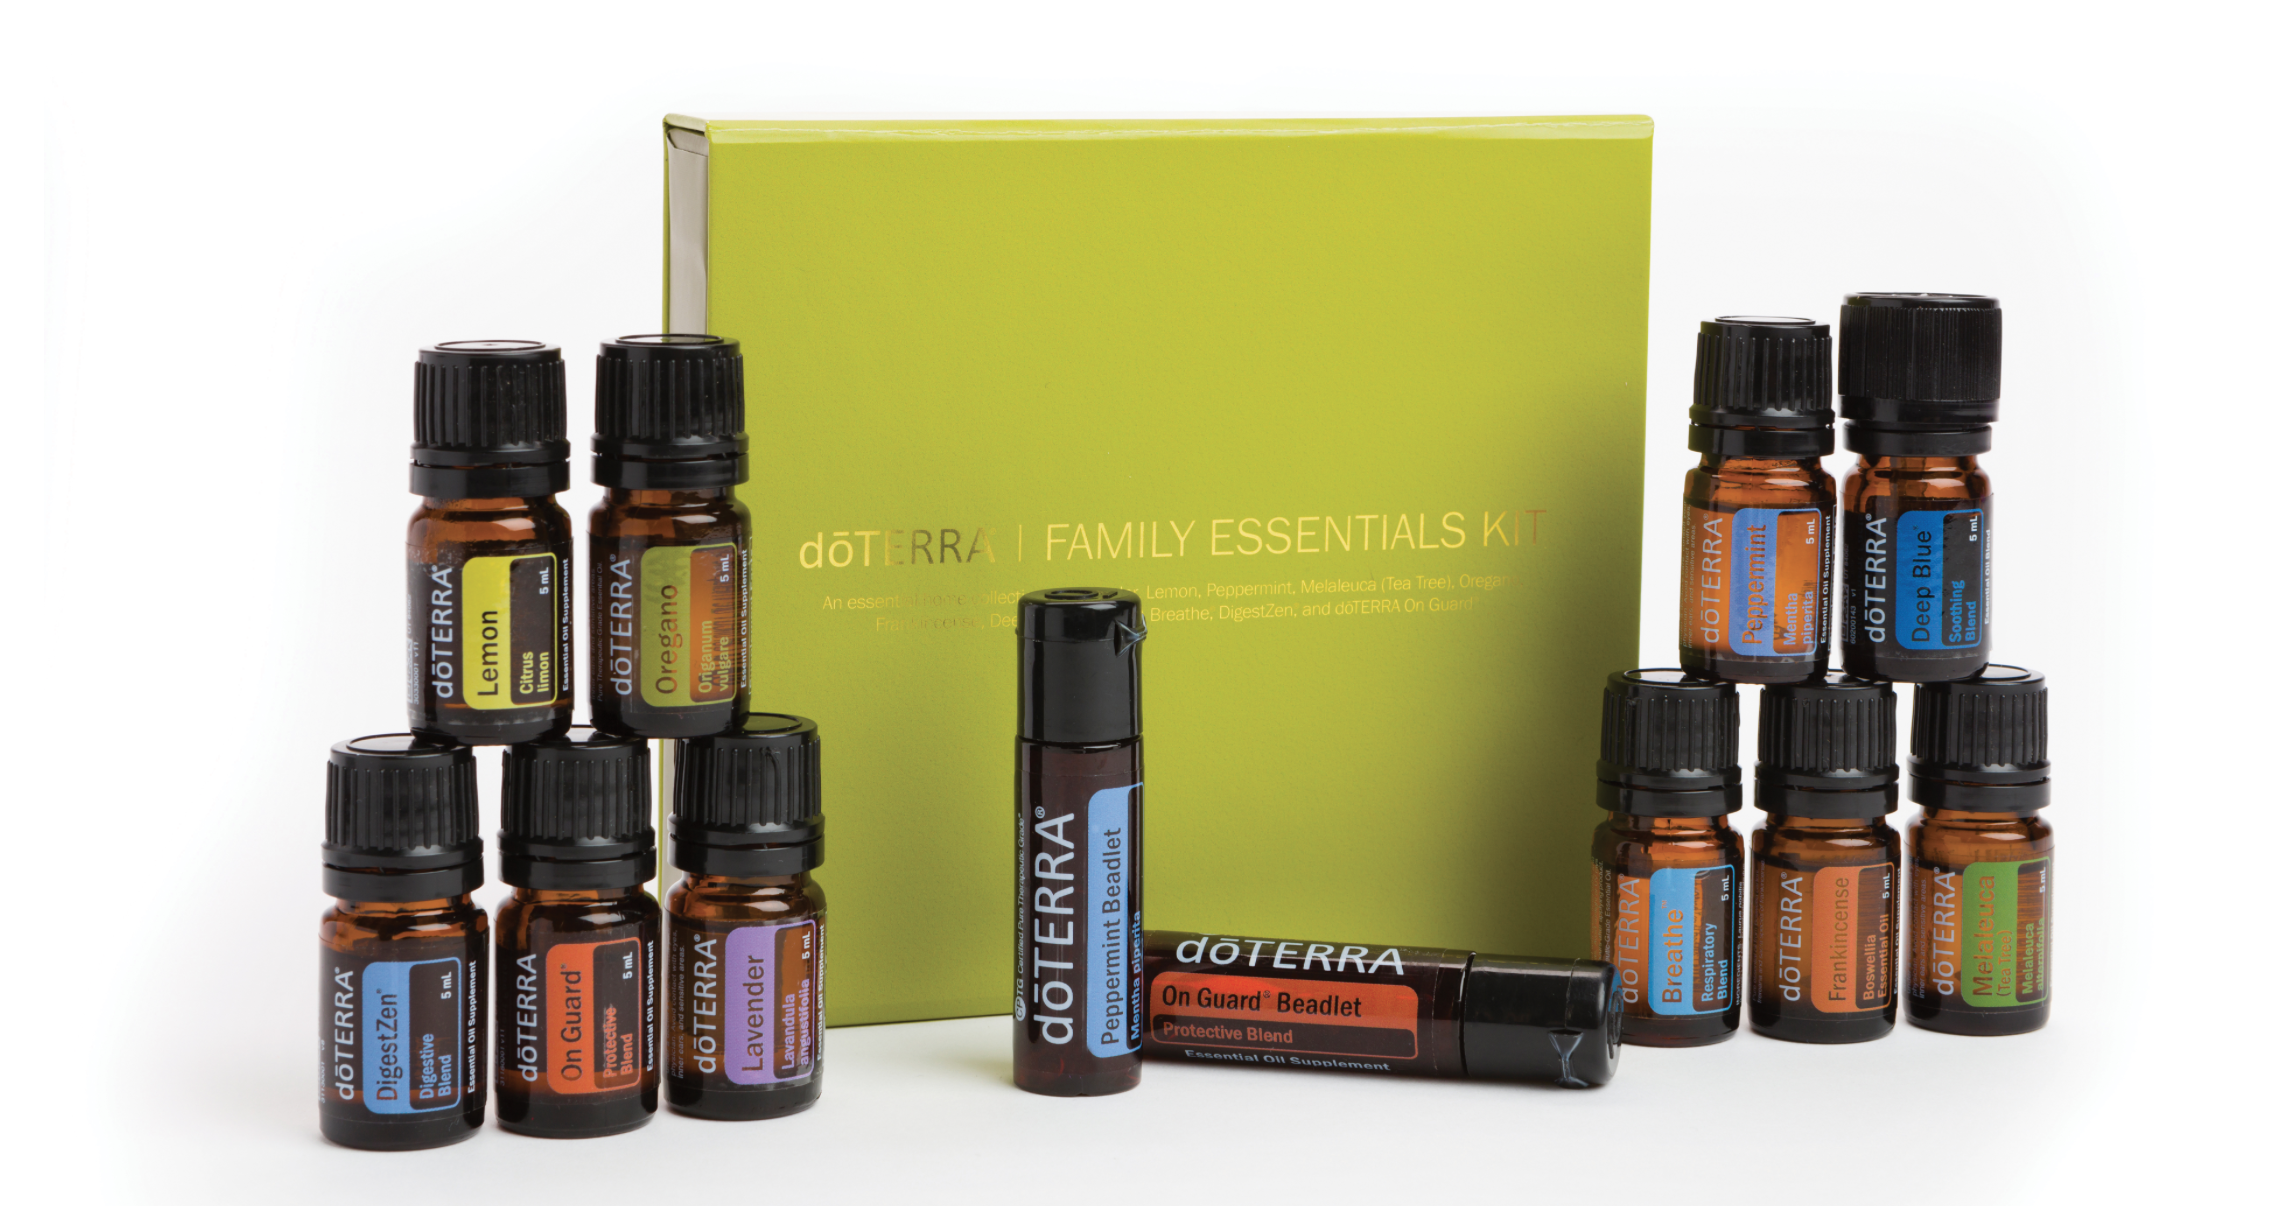 Family Essentials & Beadlets Kit - A perfect addition to every home, the Family Essentials Kit and Beadlets Enrollment Kit supports a healthy and uplifting family environment.Essential Oils - 5 mL:Lavender, Lemon, Peppermint, Melaleuca, Oregano, Frankincense, Deep Blue®, doTERRA Breathe®, DigestZen®, doTERRA On Guard®Other Products:Peppermint Beadlets, doTERRA On Guard® Beadlets, The doTERRA Essentials Booklet